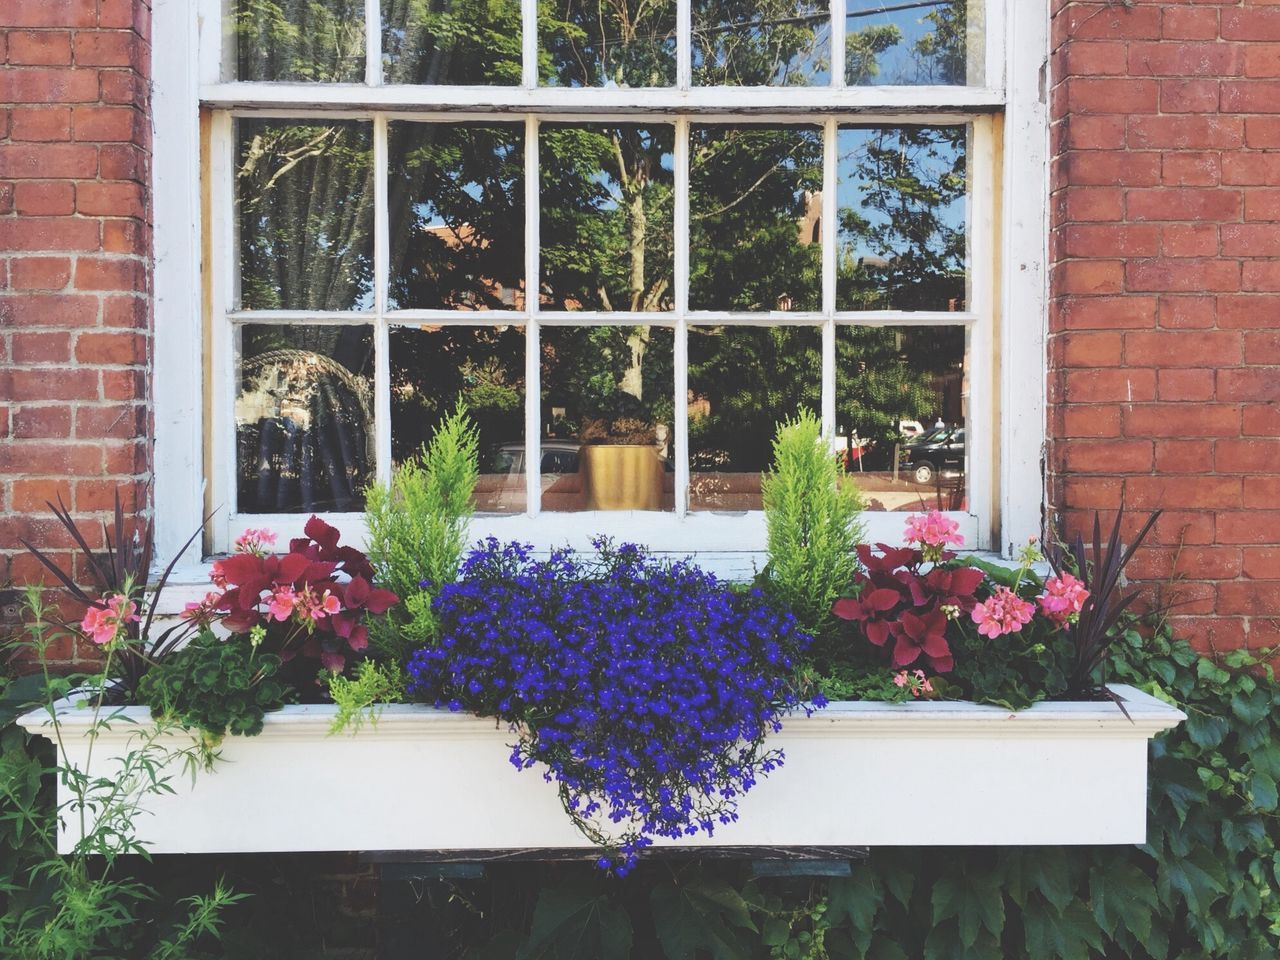 Flowers Garden Gardening Window Box Flower Box Planter Purple Flowers Summer Summer Flowers Brick Building Brick Window New England  Window Panes Old Window Colonial Home Reflection In The Window Glass Architectual Detail